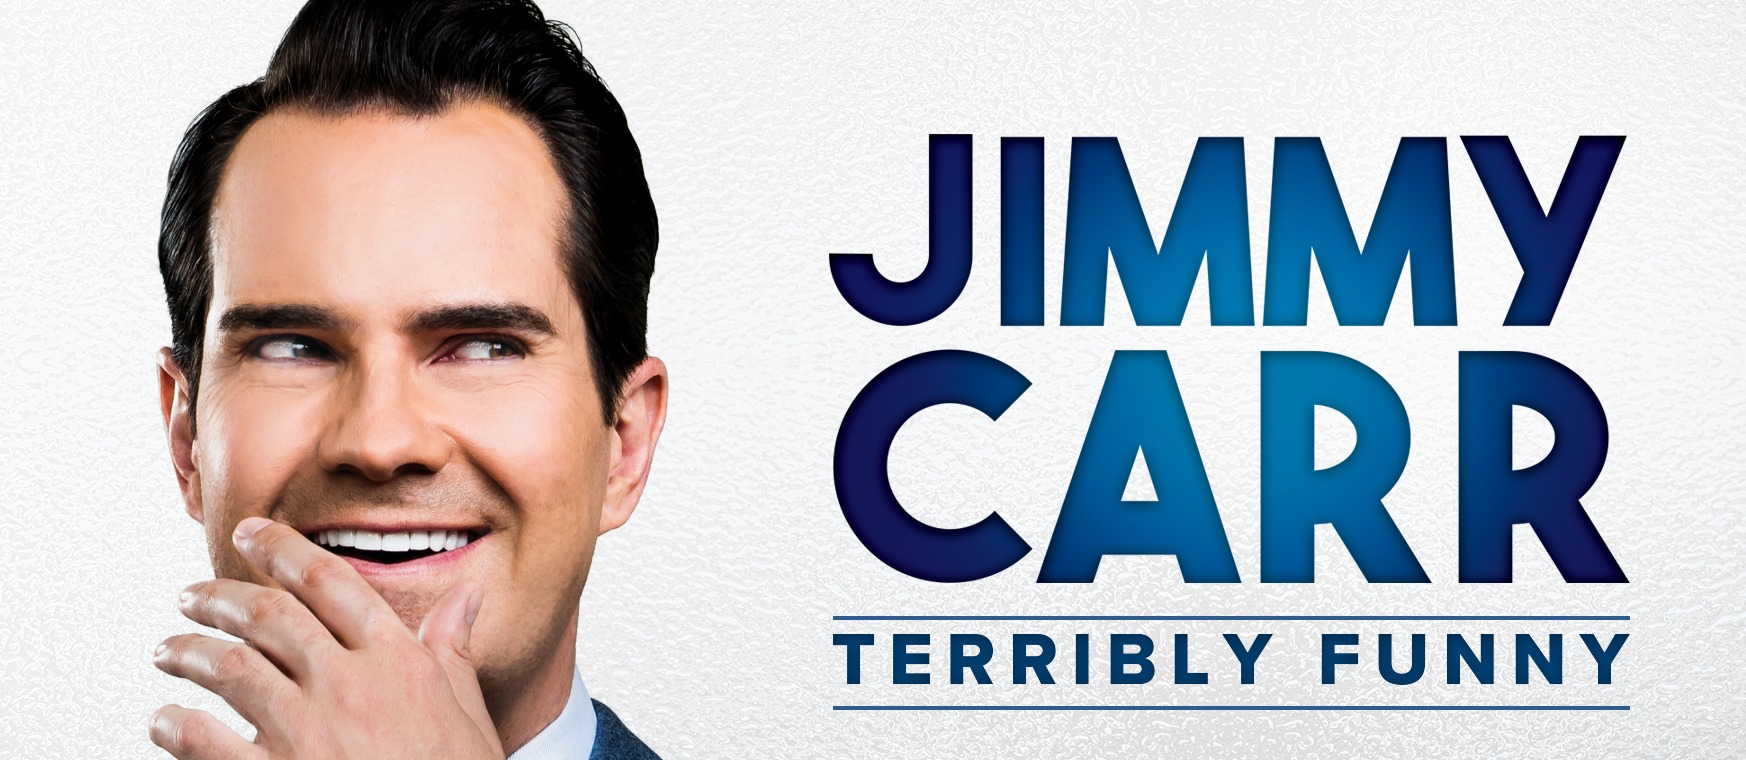 Jimmy Carr - 'Terribly Funny' - EXTRA DATE